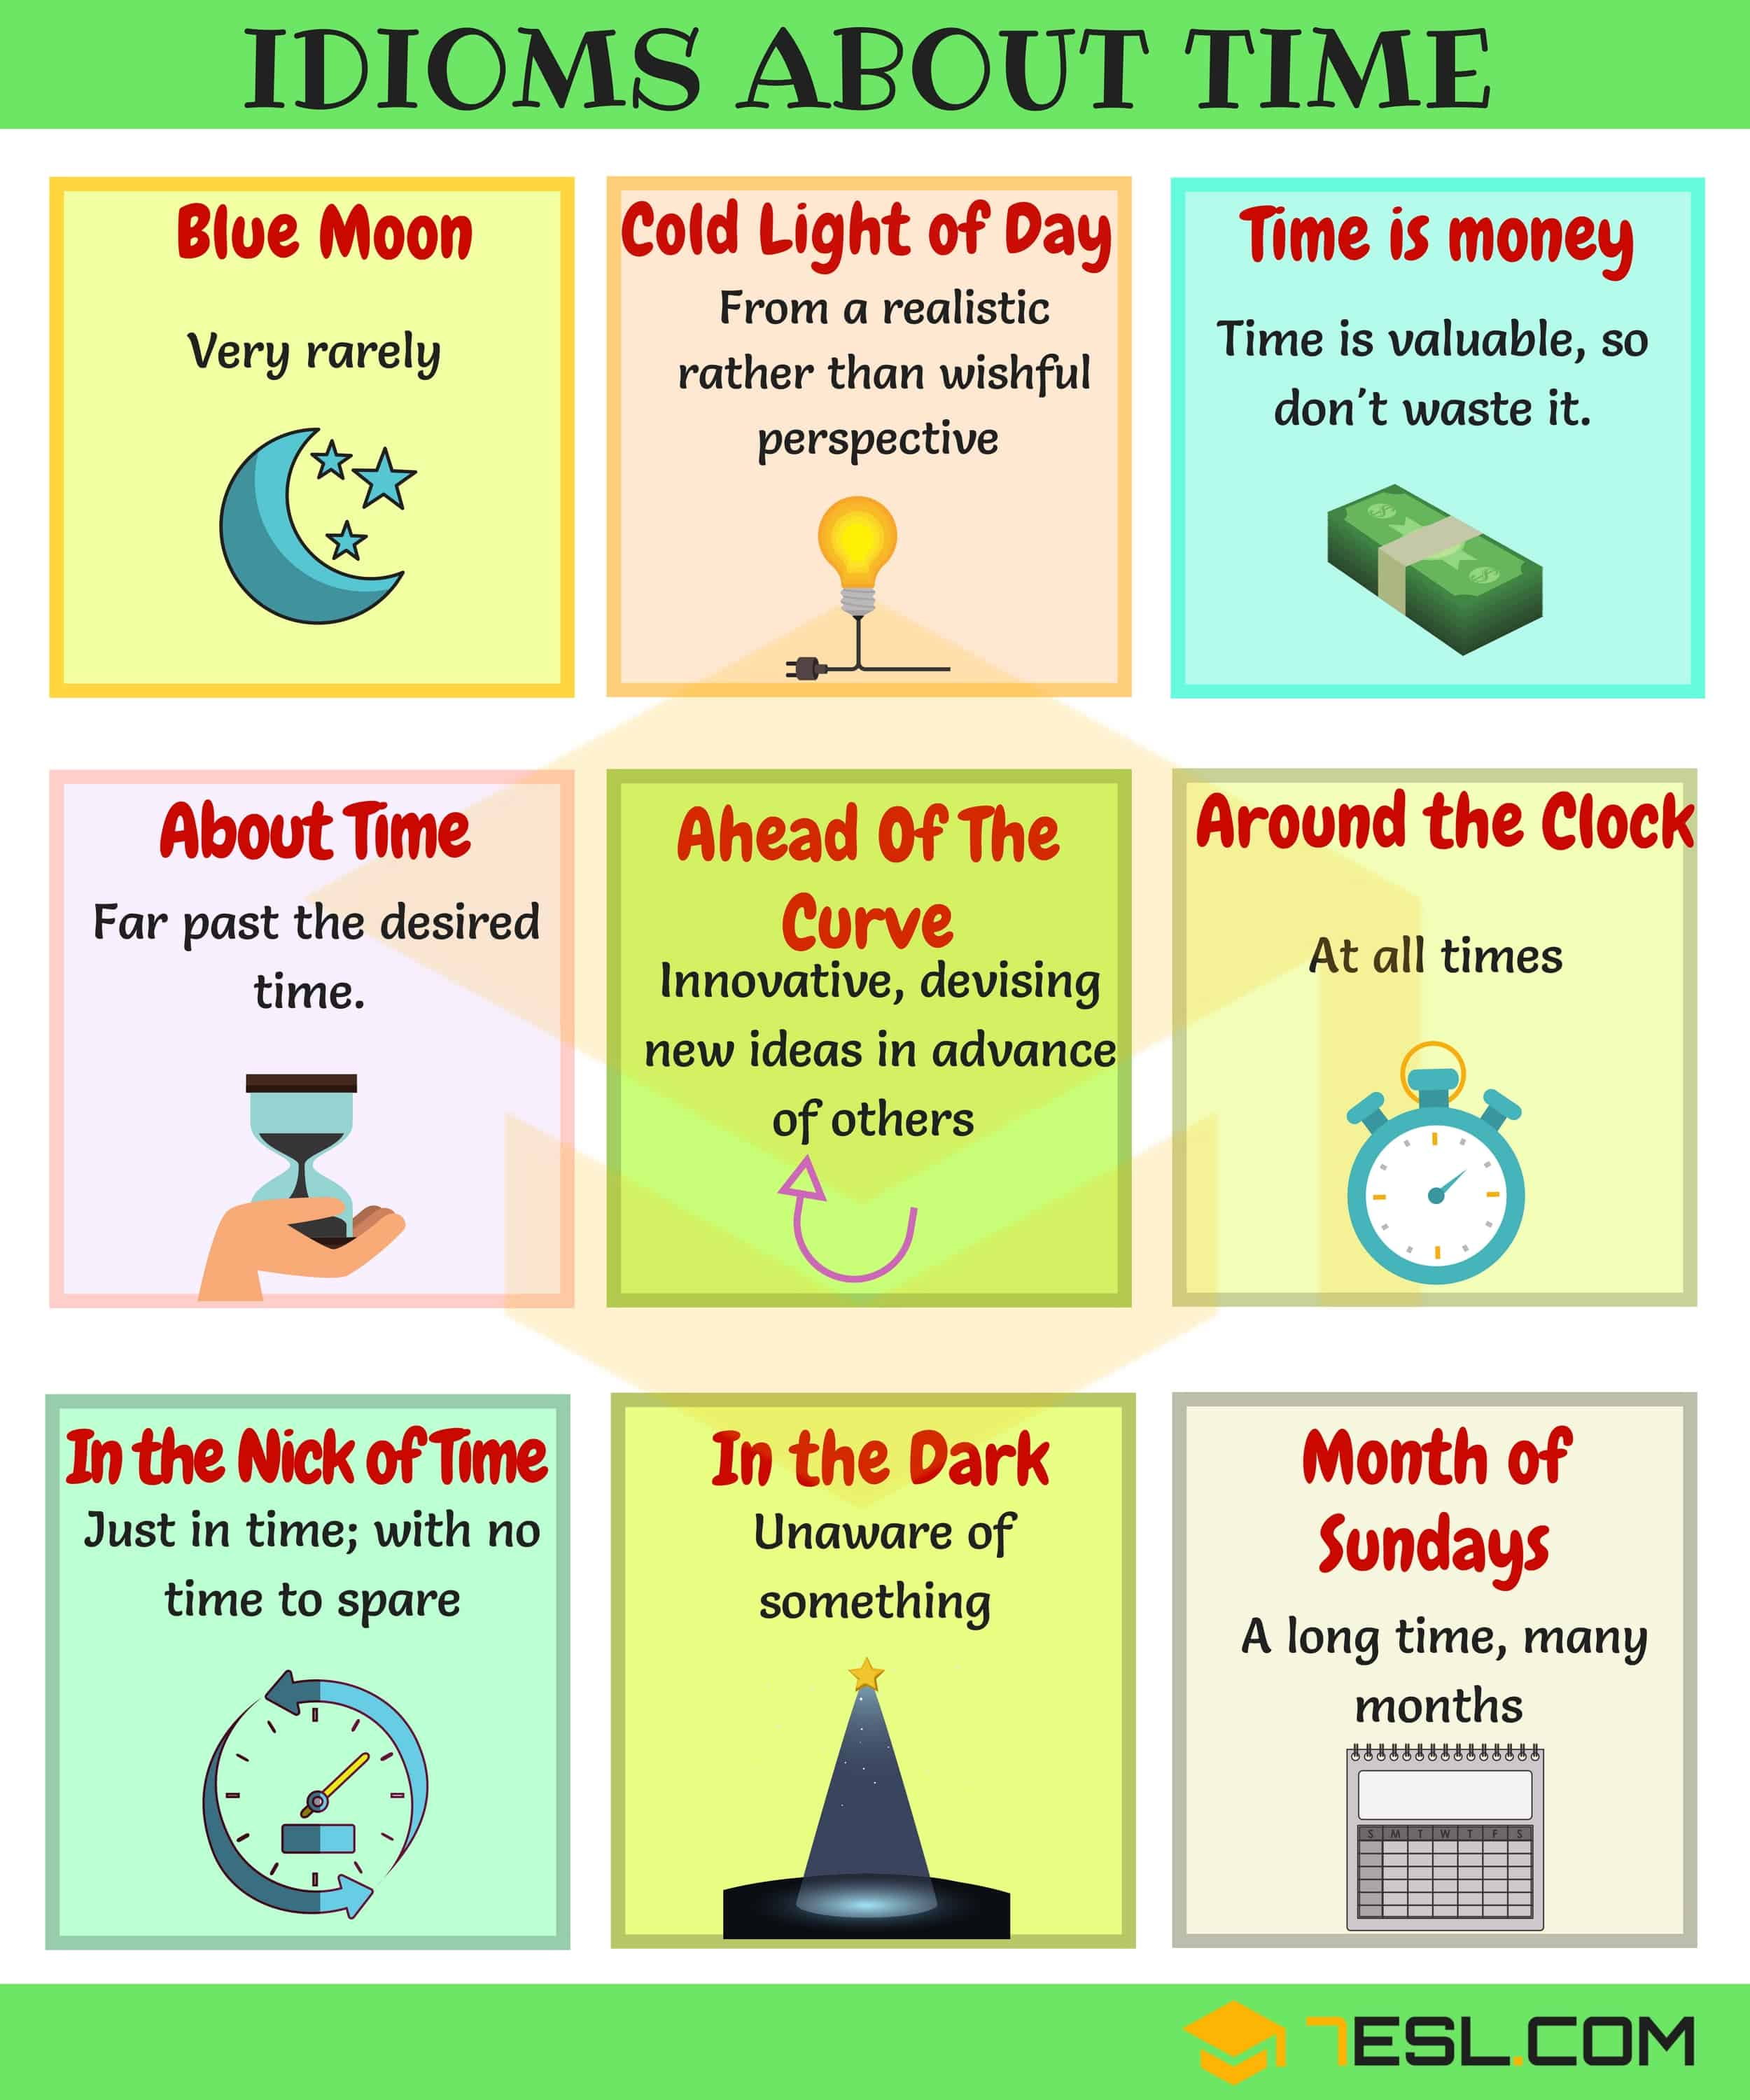 General Idioms | List of Idioms with Meaning and Examples 3